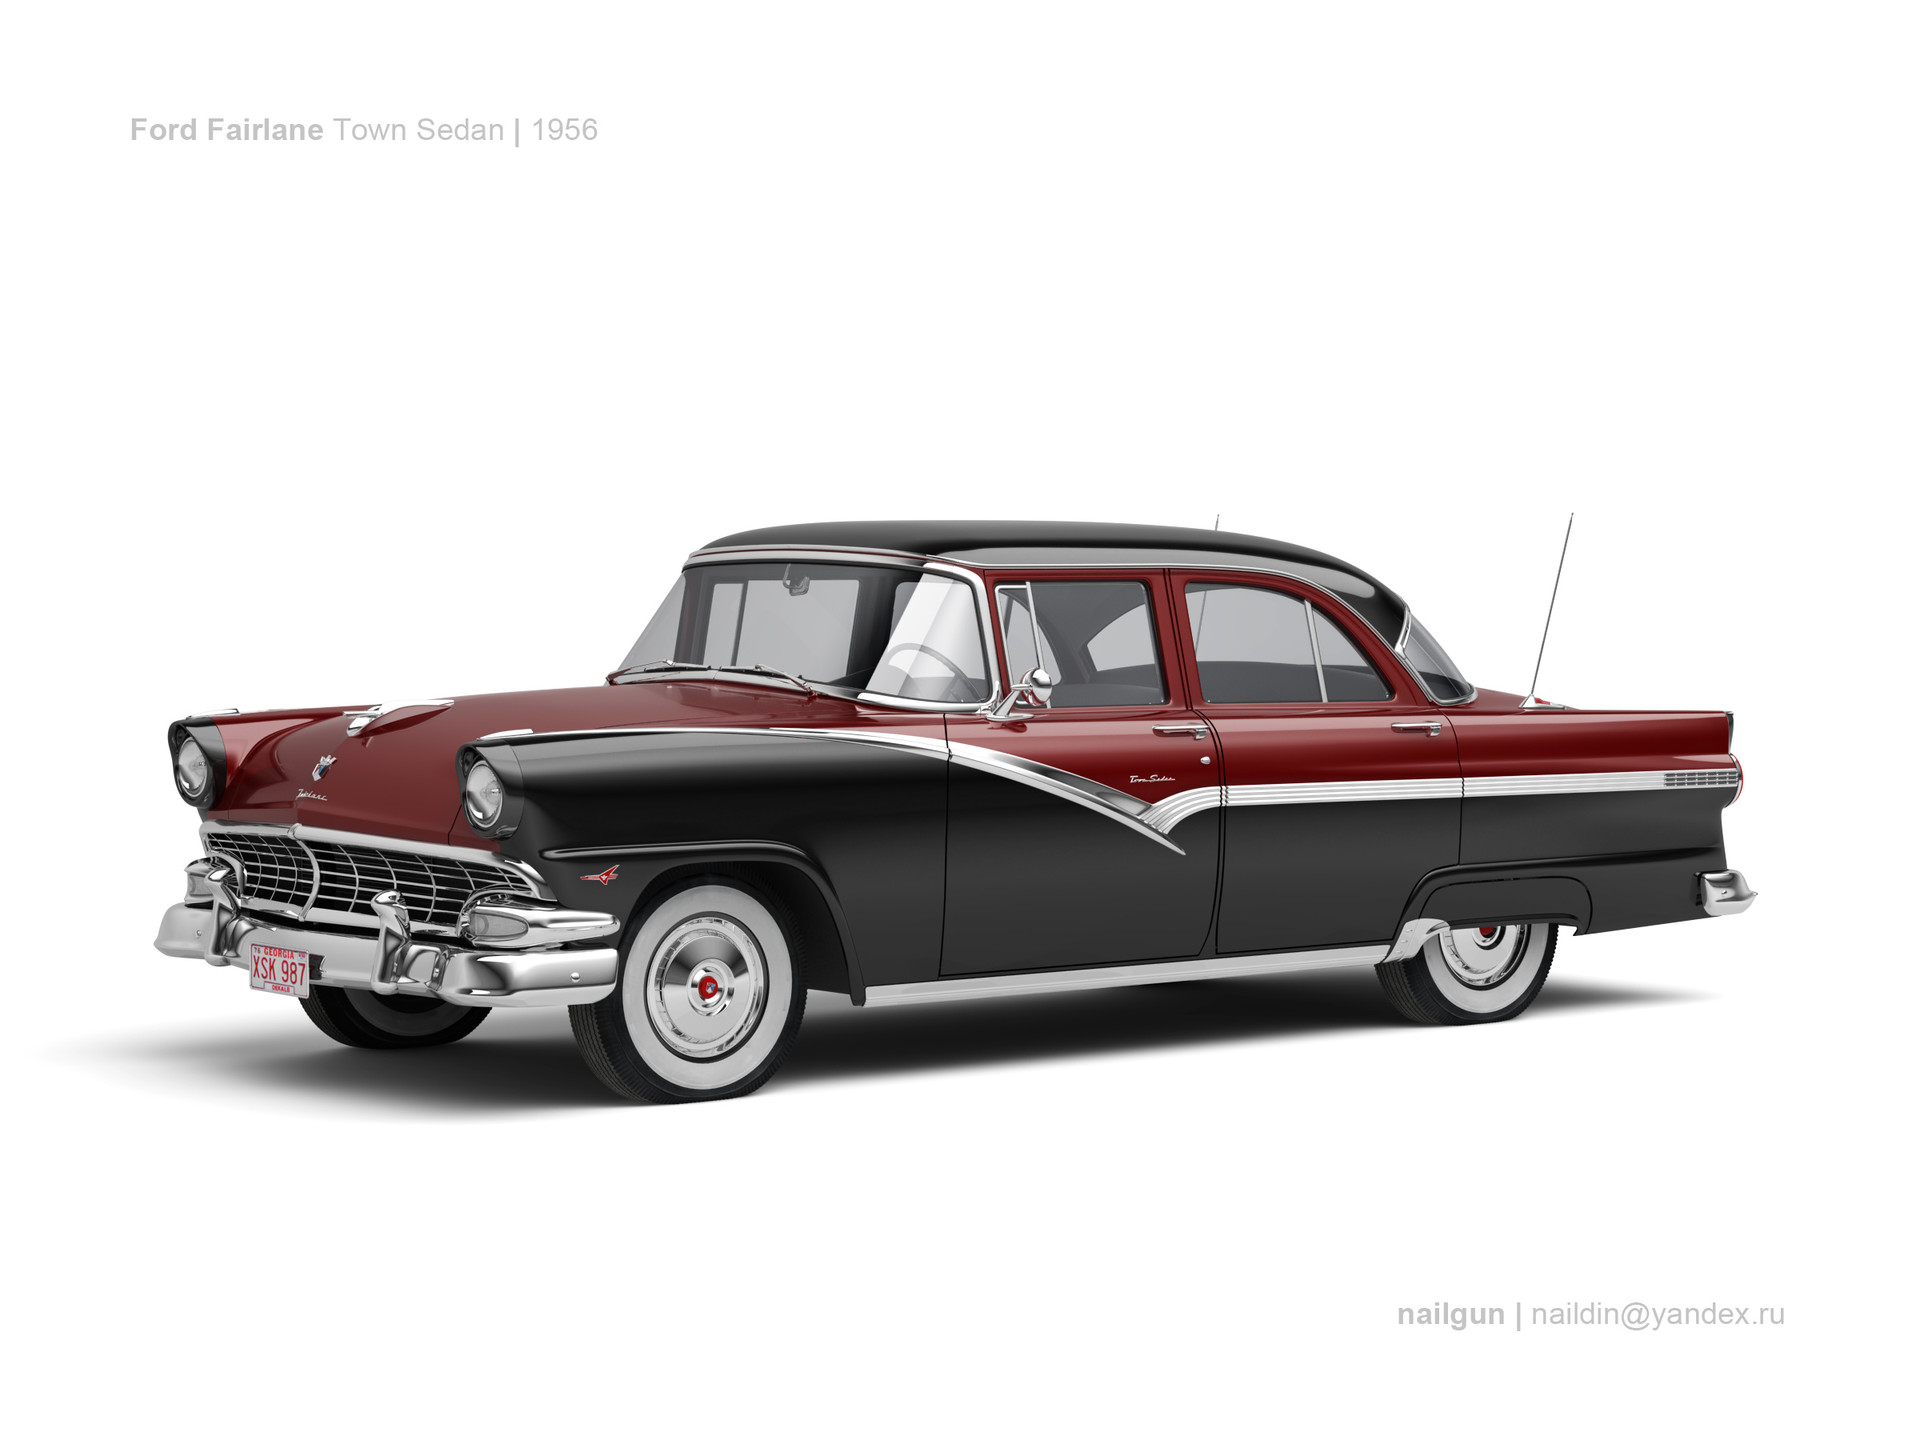 Nail khusnutdinov usa ford fairlane town sedan 56 0